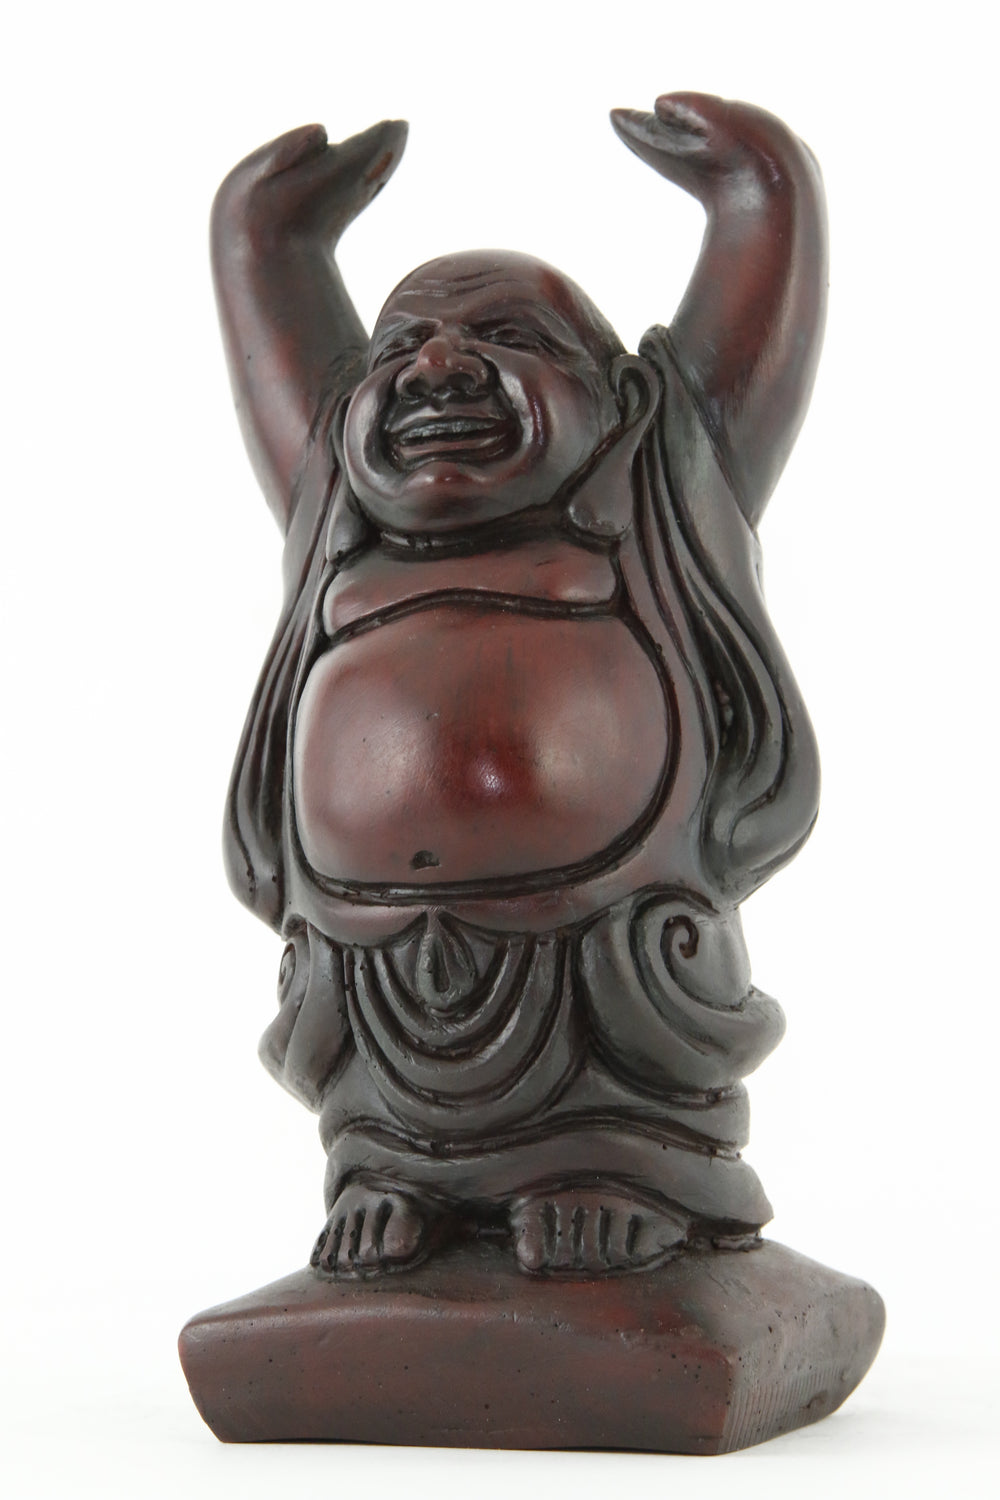 LAUGHING BUDDHA STATUE DARK LARGE SIZE SIDE VIEW